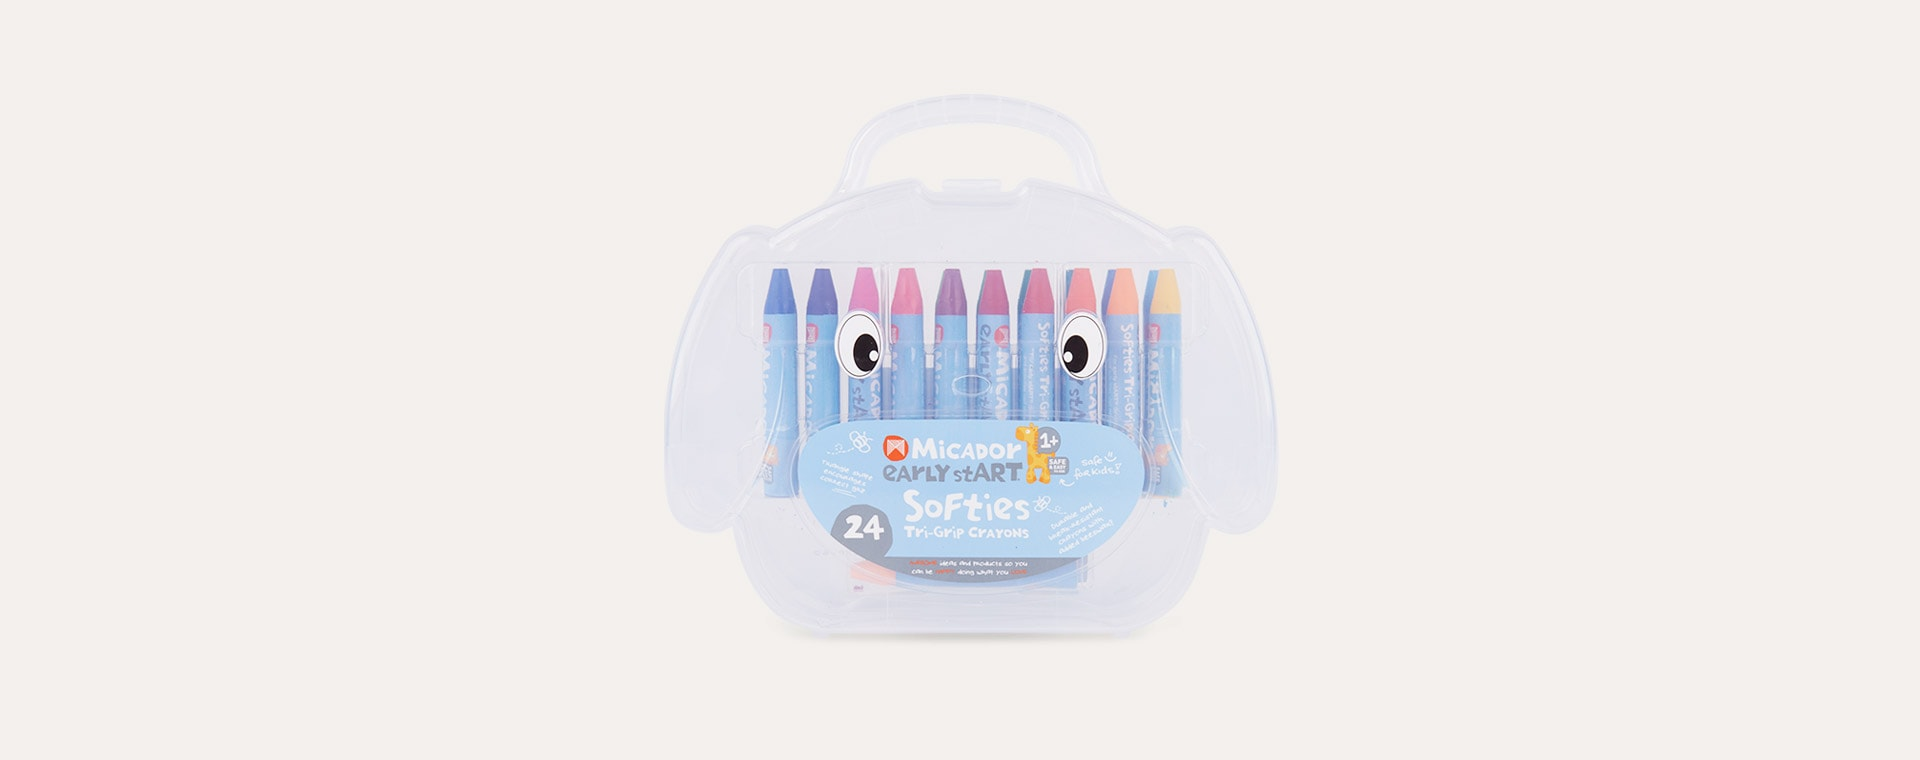 Multi Micador Early stART Softies Tri - Grip Crayons